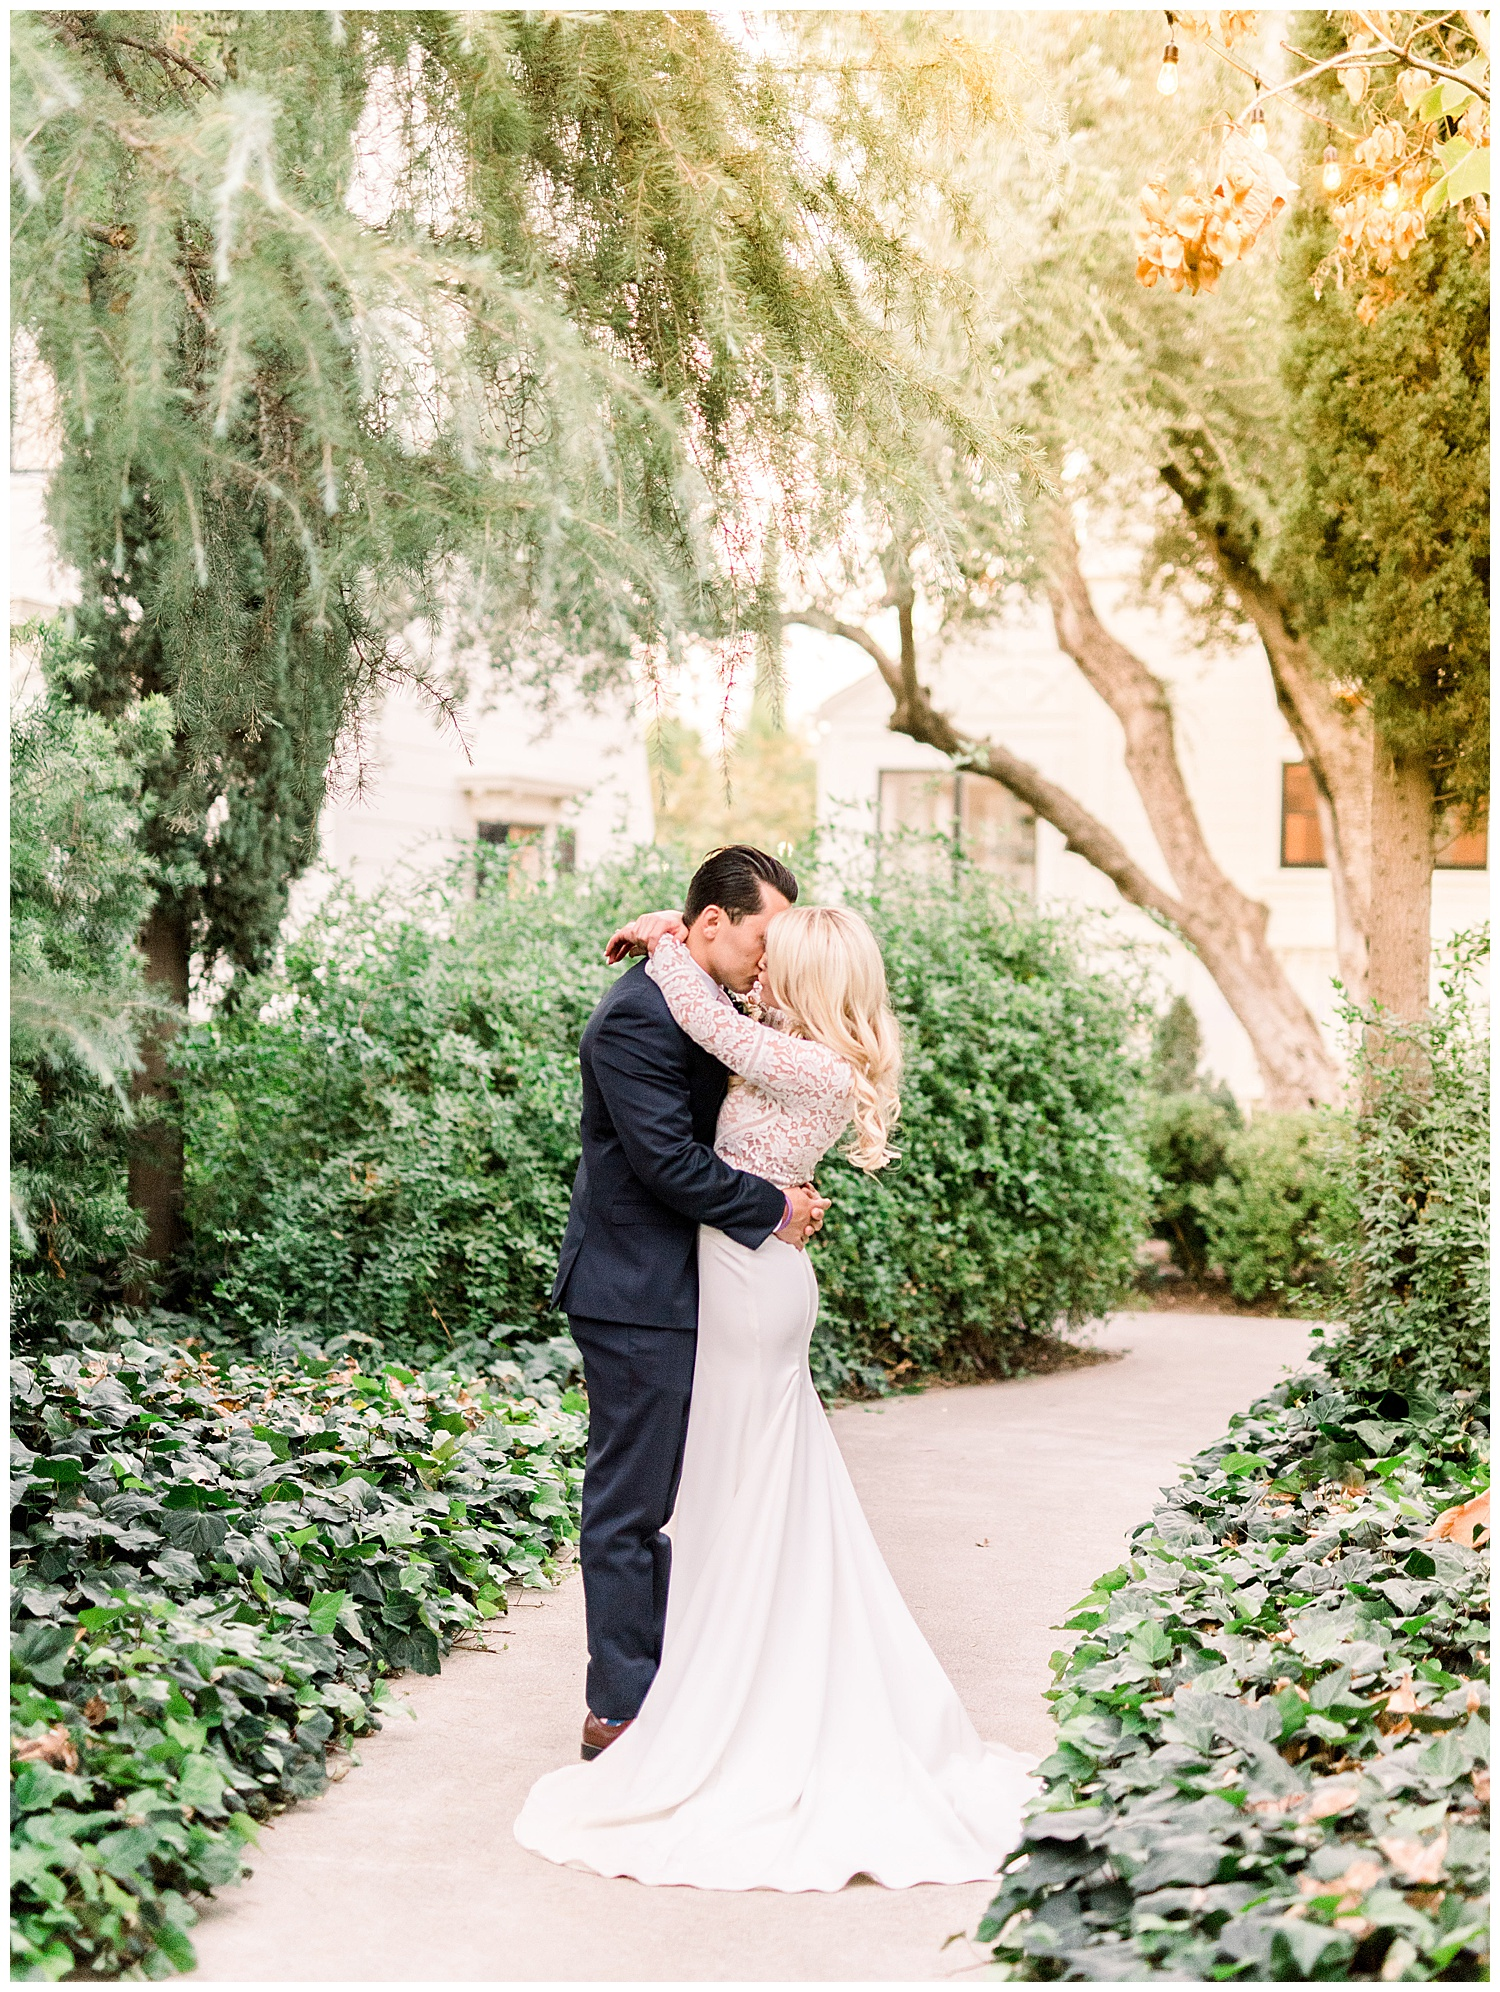 Janine_Licare_Photography_San_Francisco_Wedding_Photographer_Carneros_Tyge_Williams_Sonoma_Napa_0224.jpg